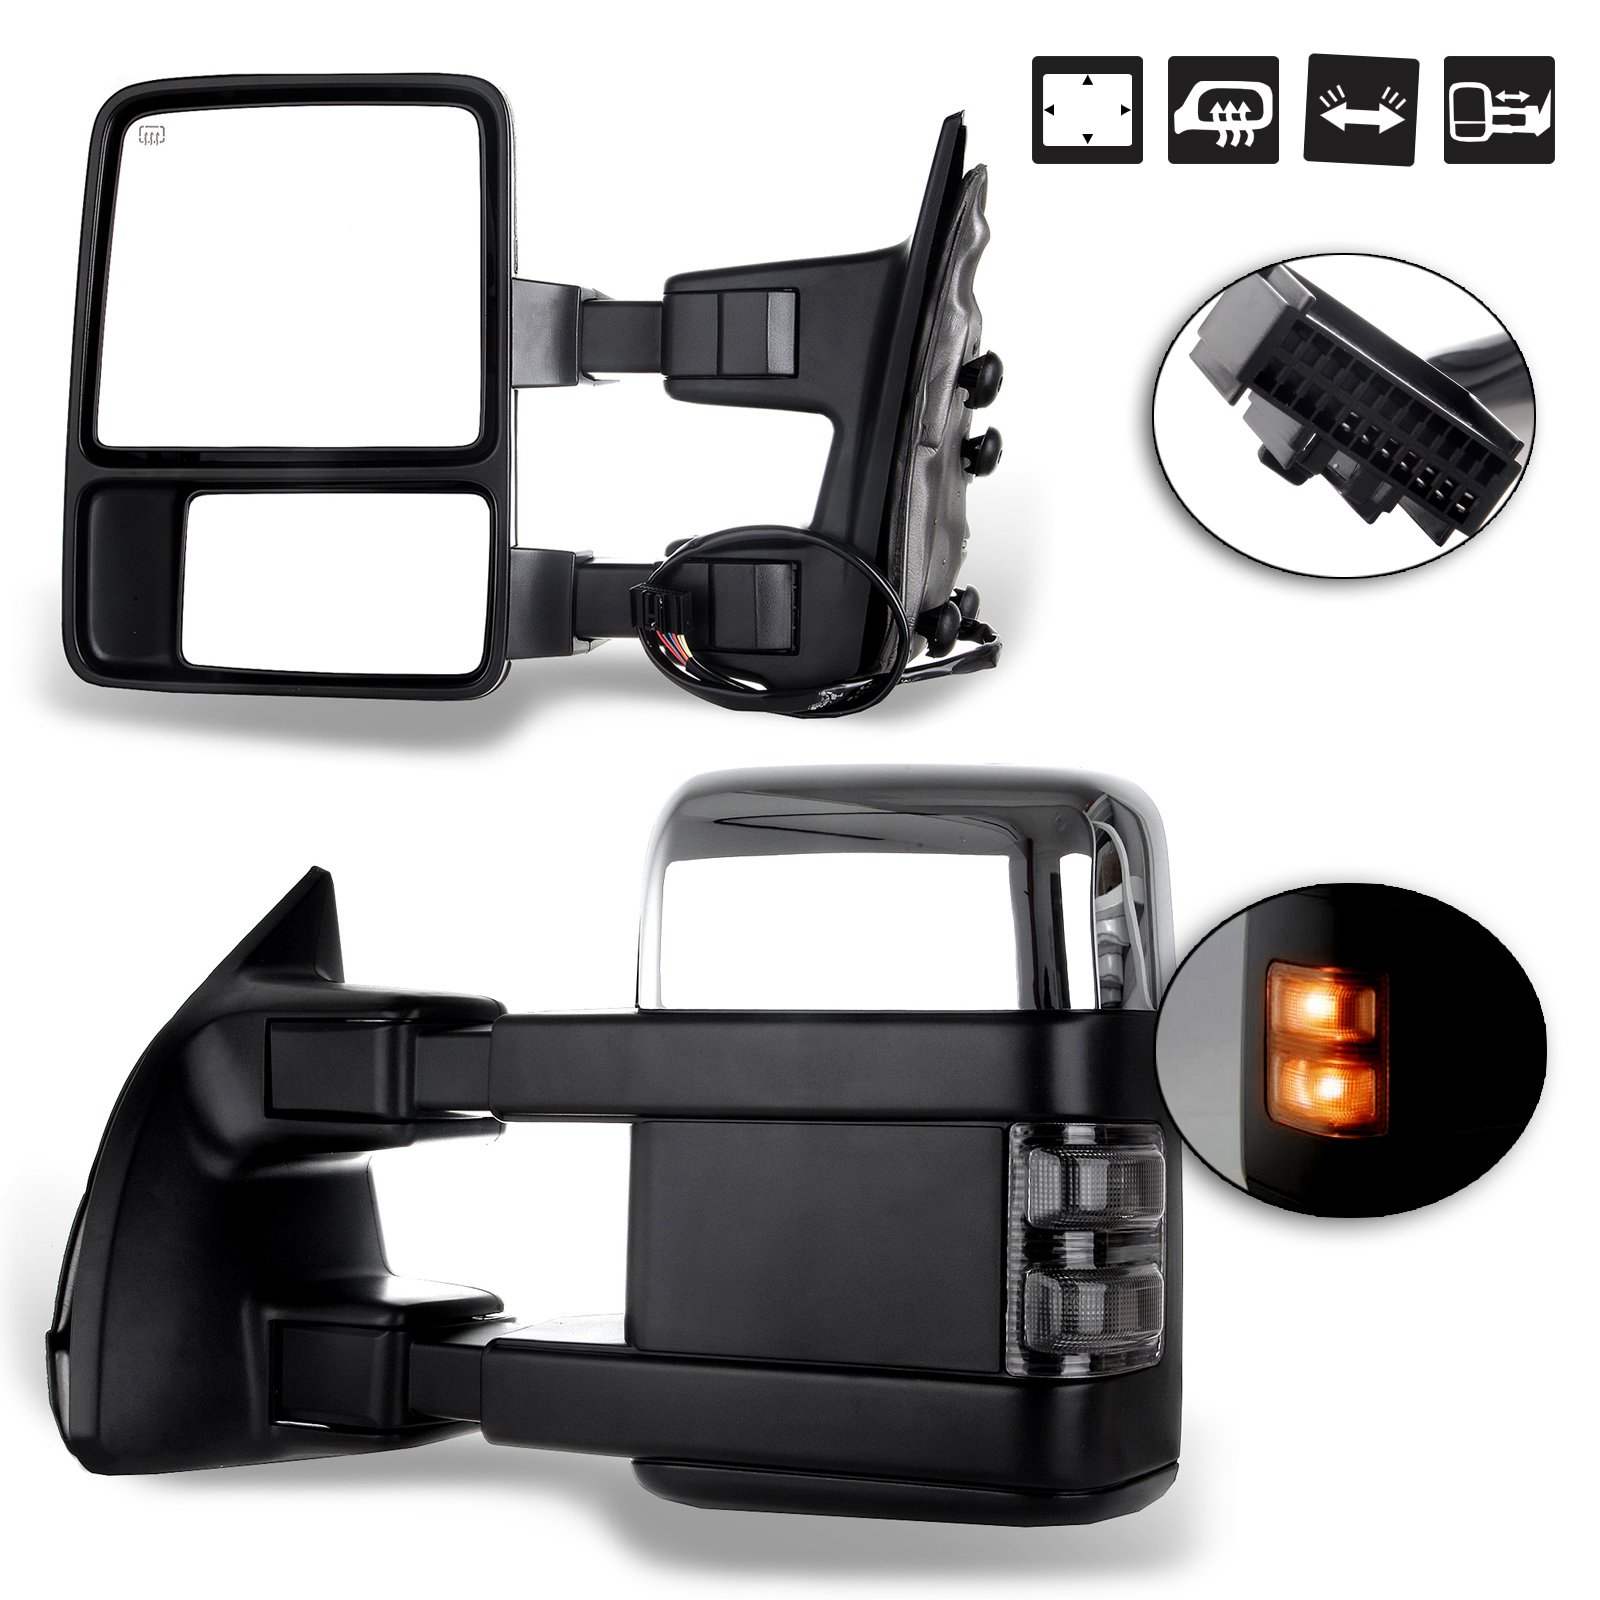 SCITOO fit Ford Towing Mirrors Chrome Rear View Mirrors fit 2008-2016 Ford F250 F350 F450 F550 Super Duty Truck Larger Glass Power Control, Heated Turn Signal Manual Extending Folding by SCITOO